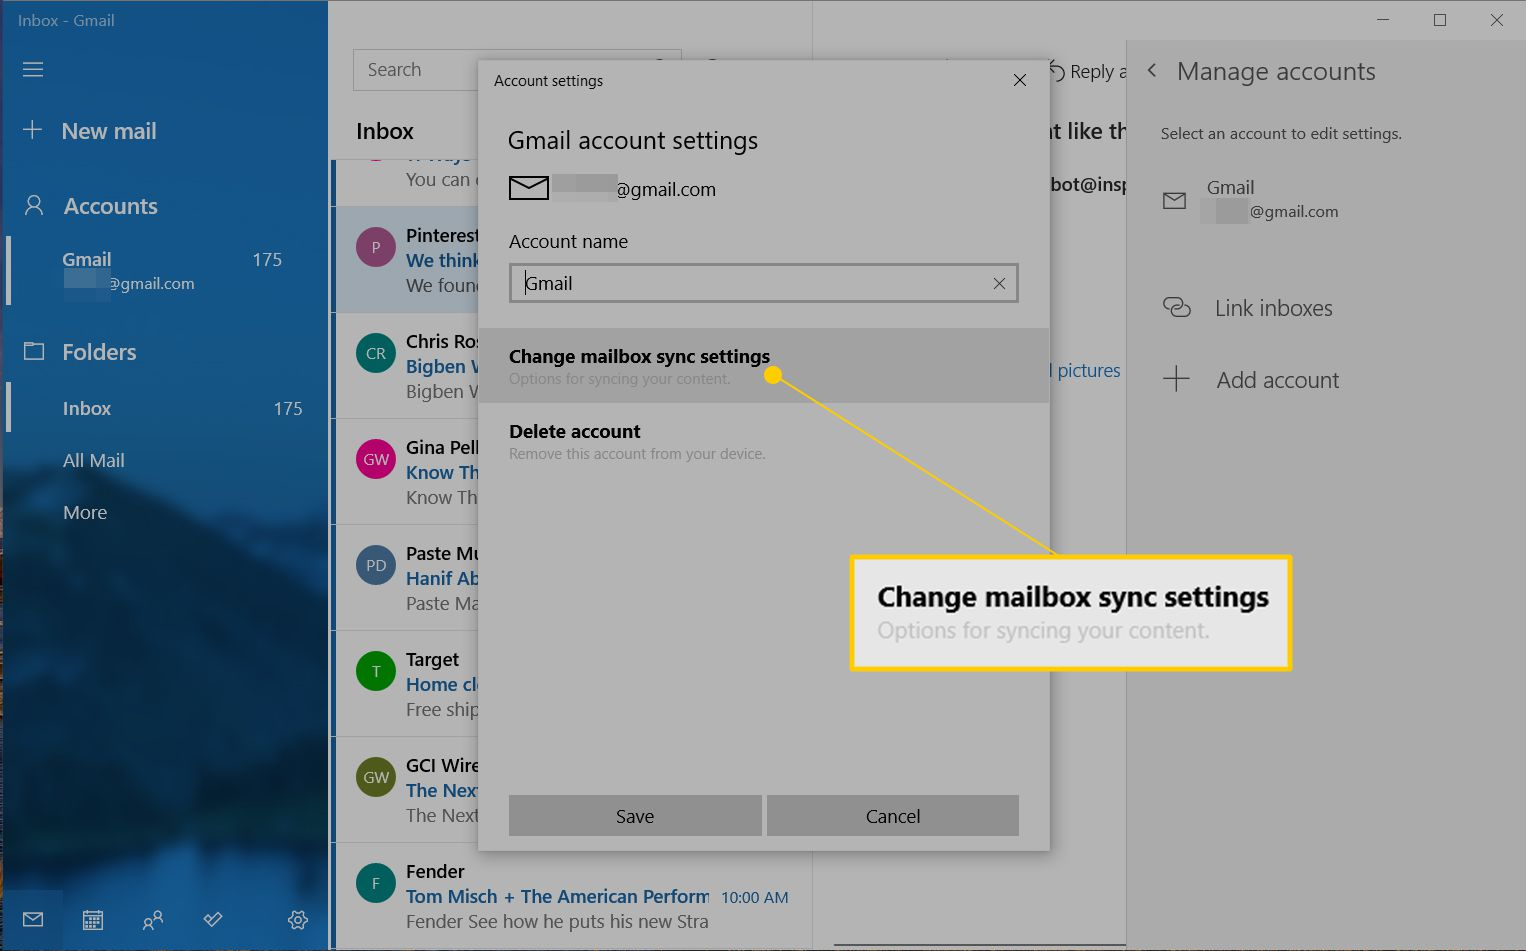 How to Remove Email Accounts in Microsoft Email Clients